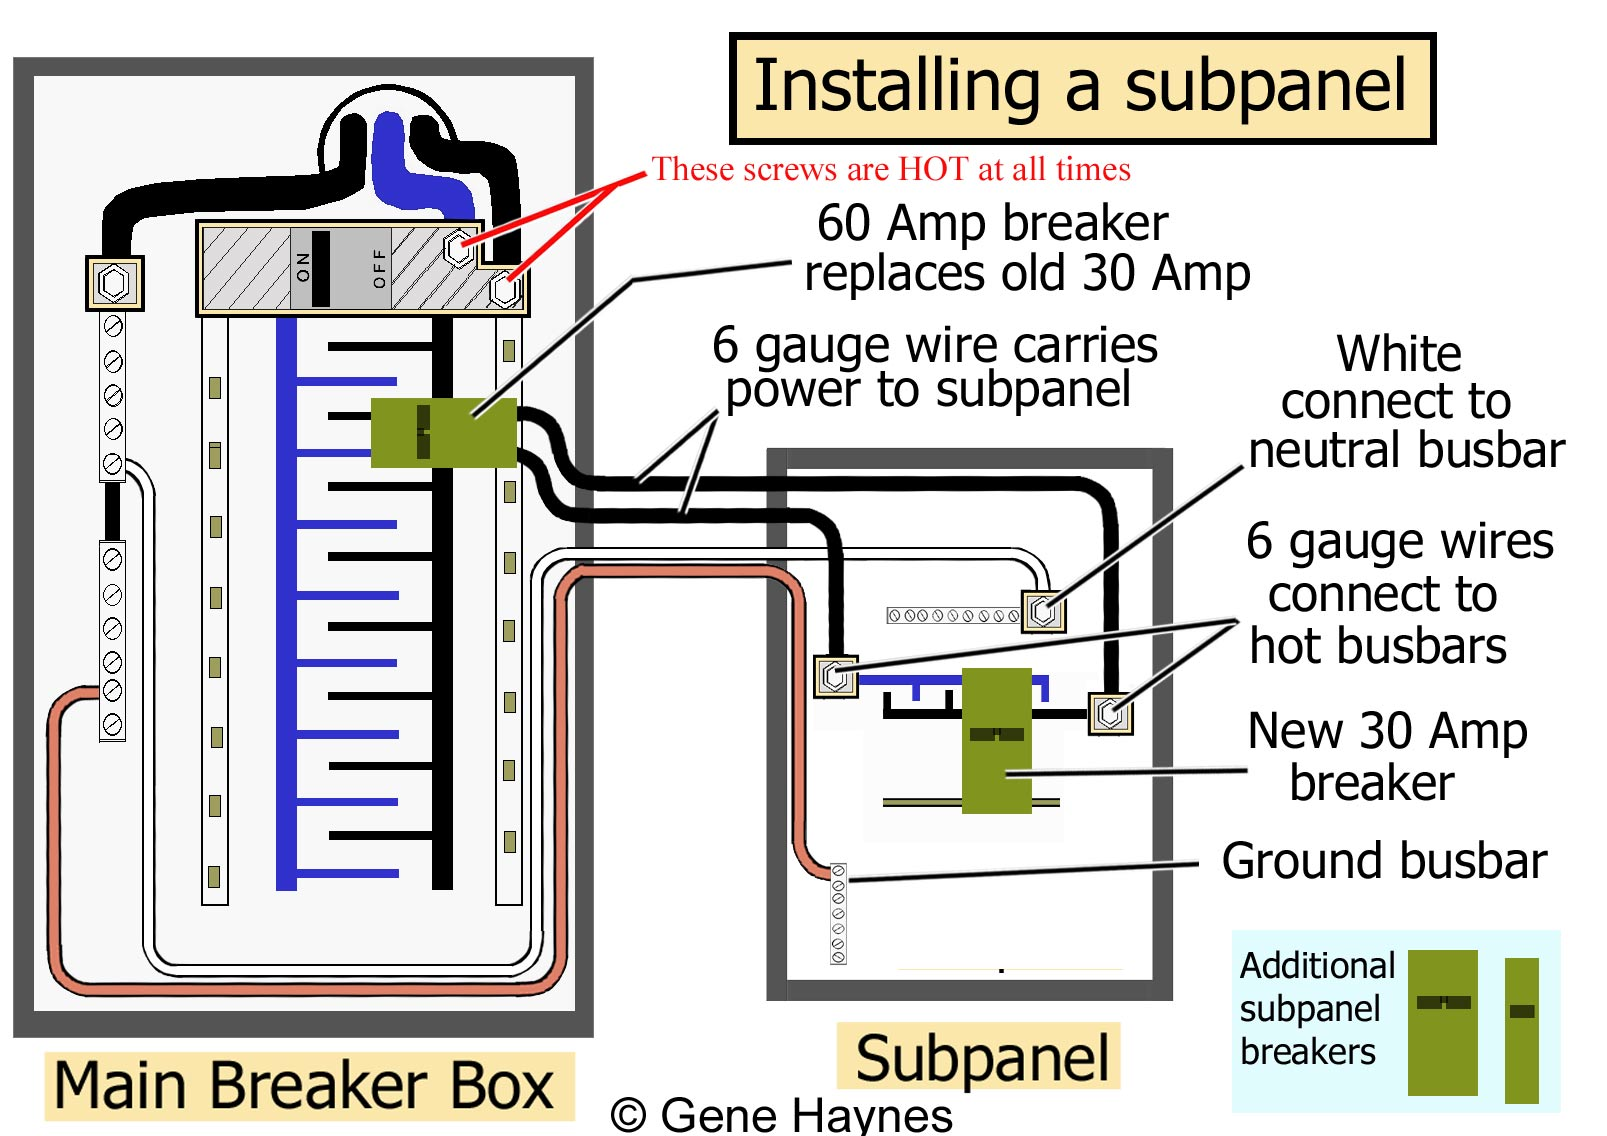 Simple Electrical Wiring Diagrams 30 Amp 110 Volt Library Diagram Breaker Box 1 60 150 Replaces Any 240 In Main Near Top